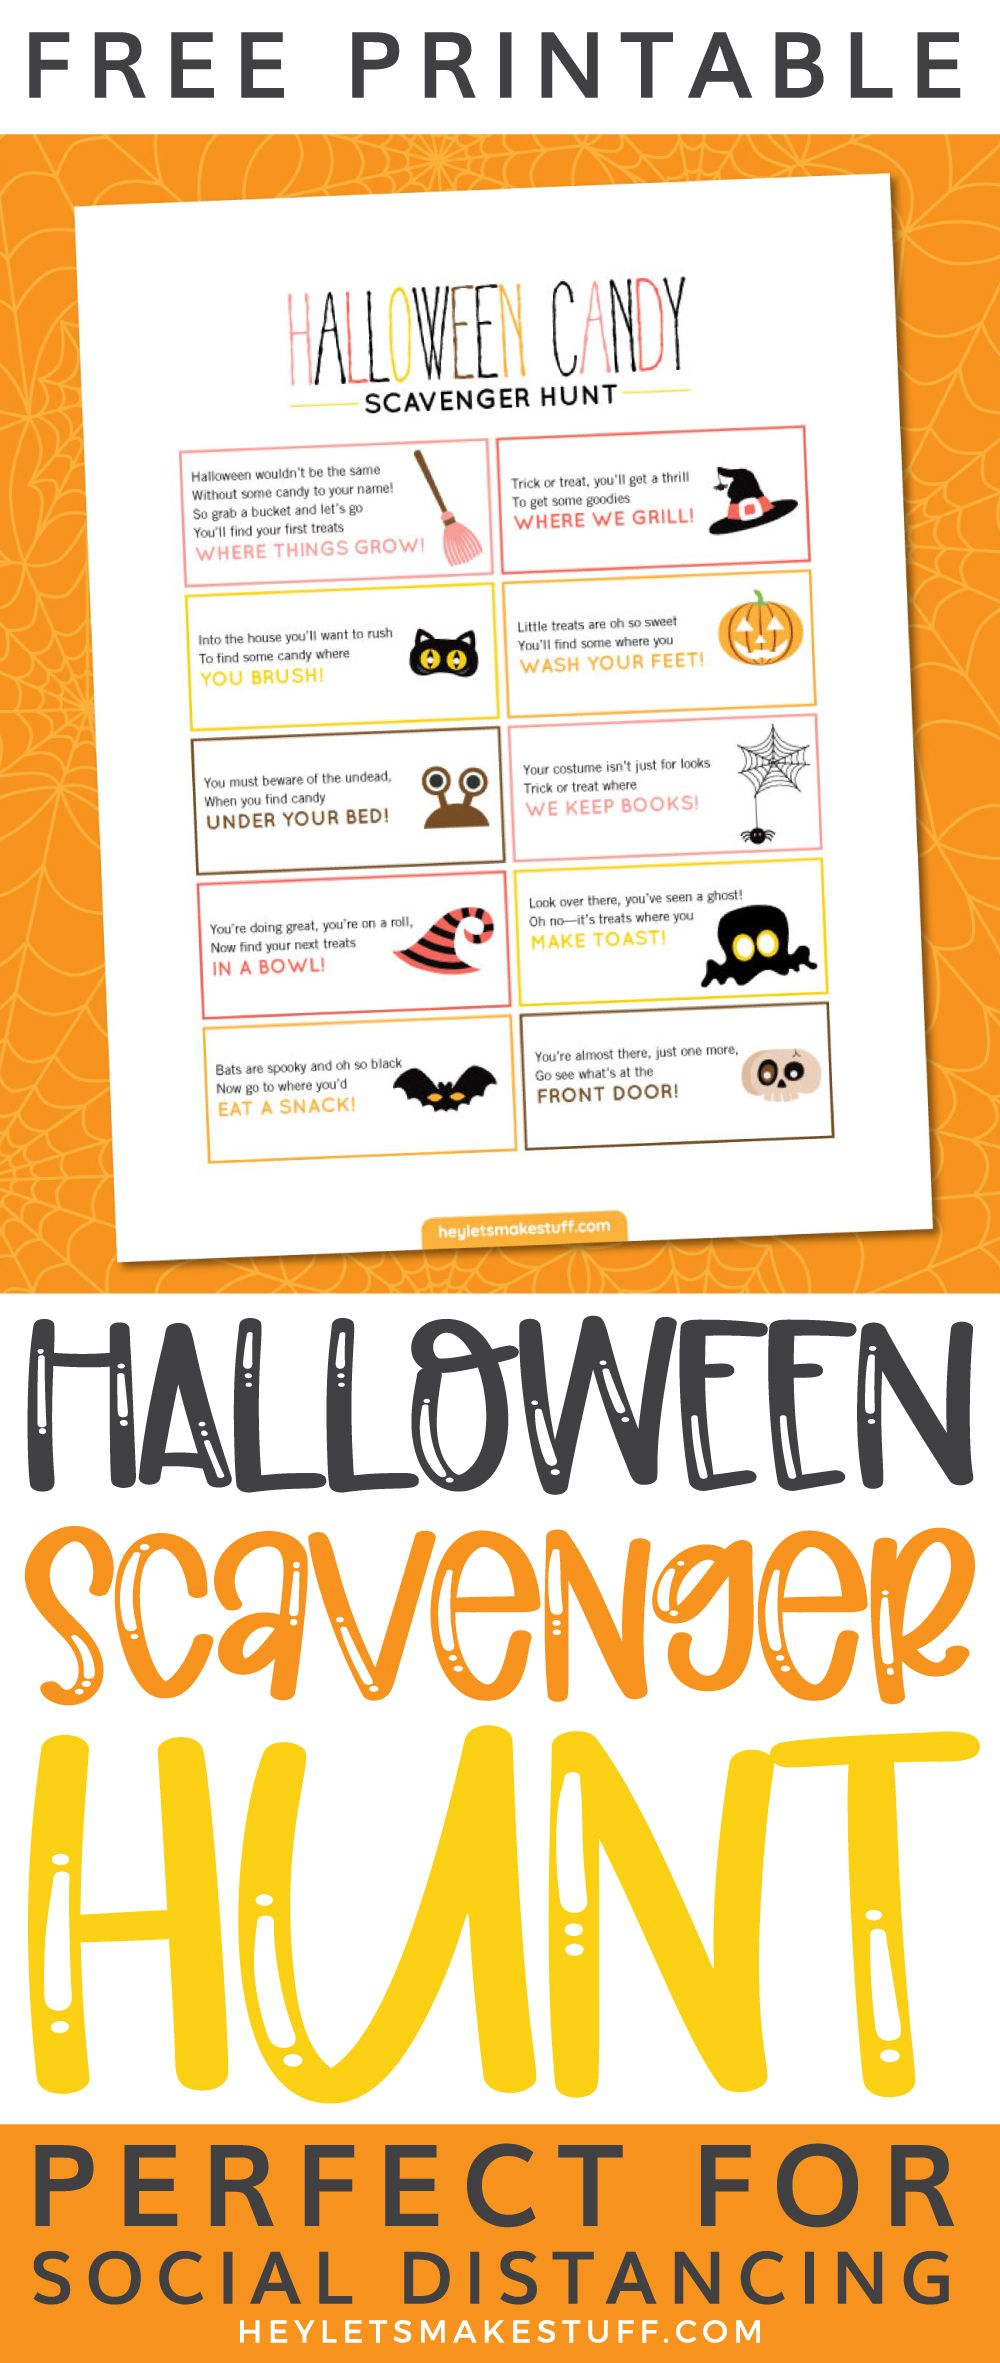 Free Printable Halloween Candy Scavenger Hunt in 2020